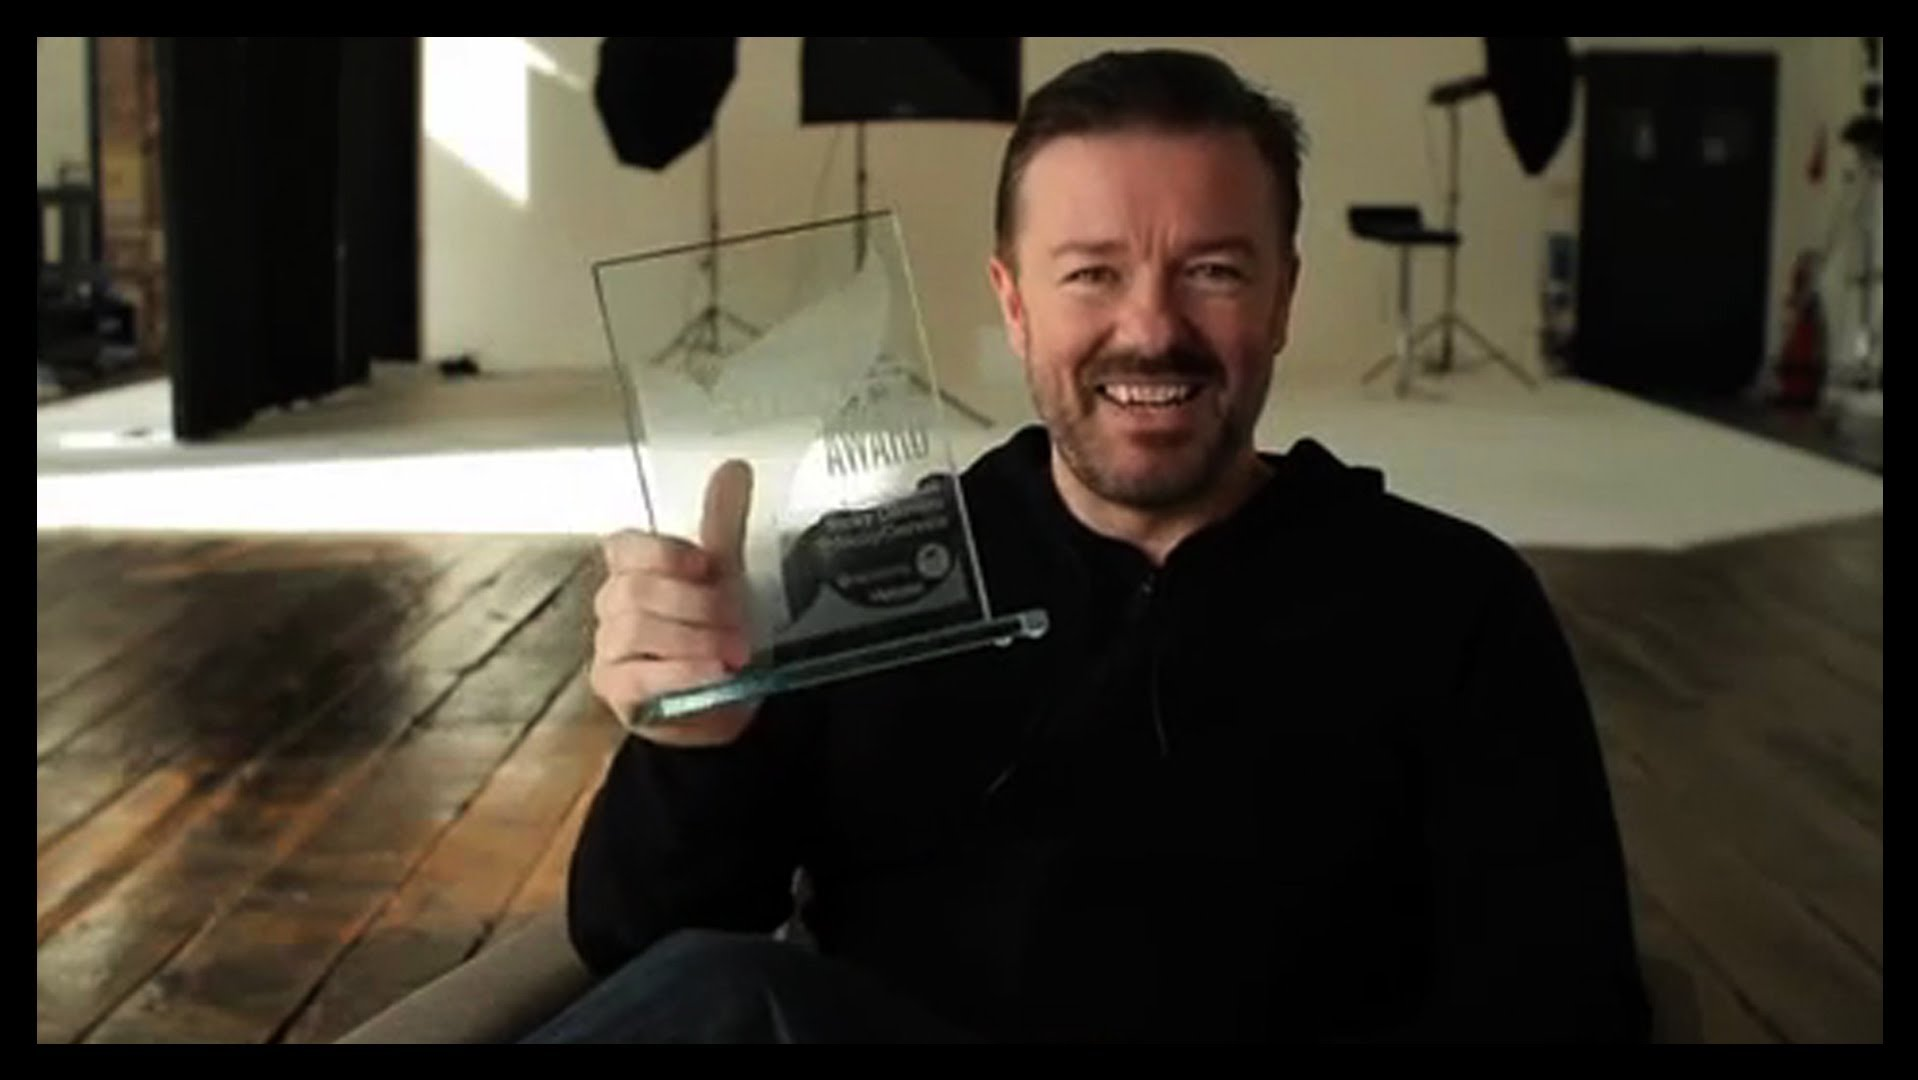 Ricky Gervais with his Lifetime Achievement Award